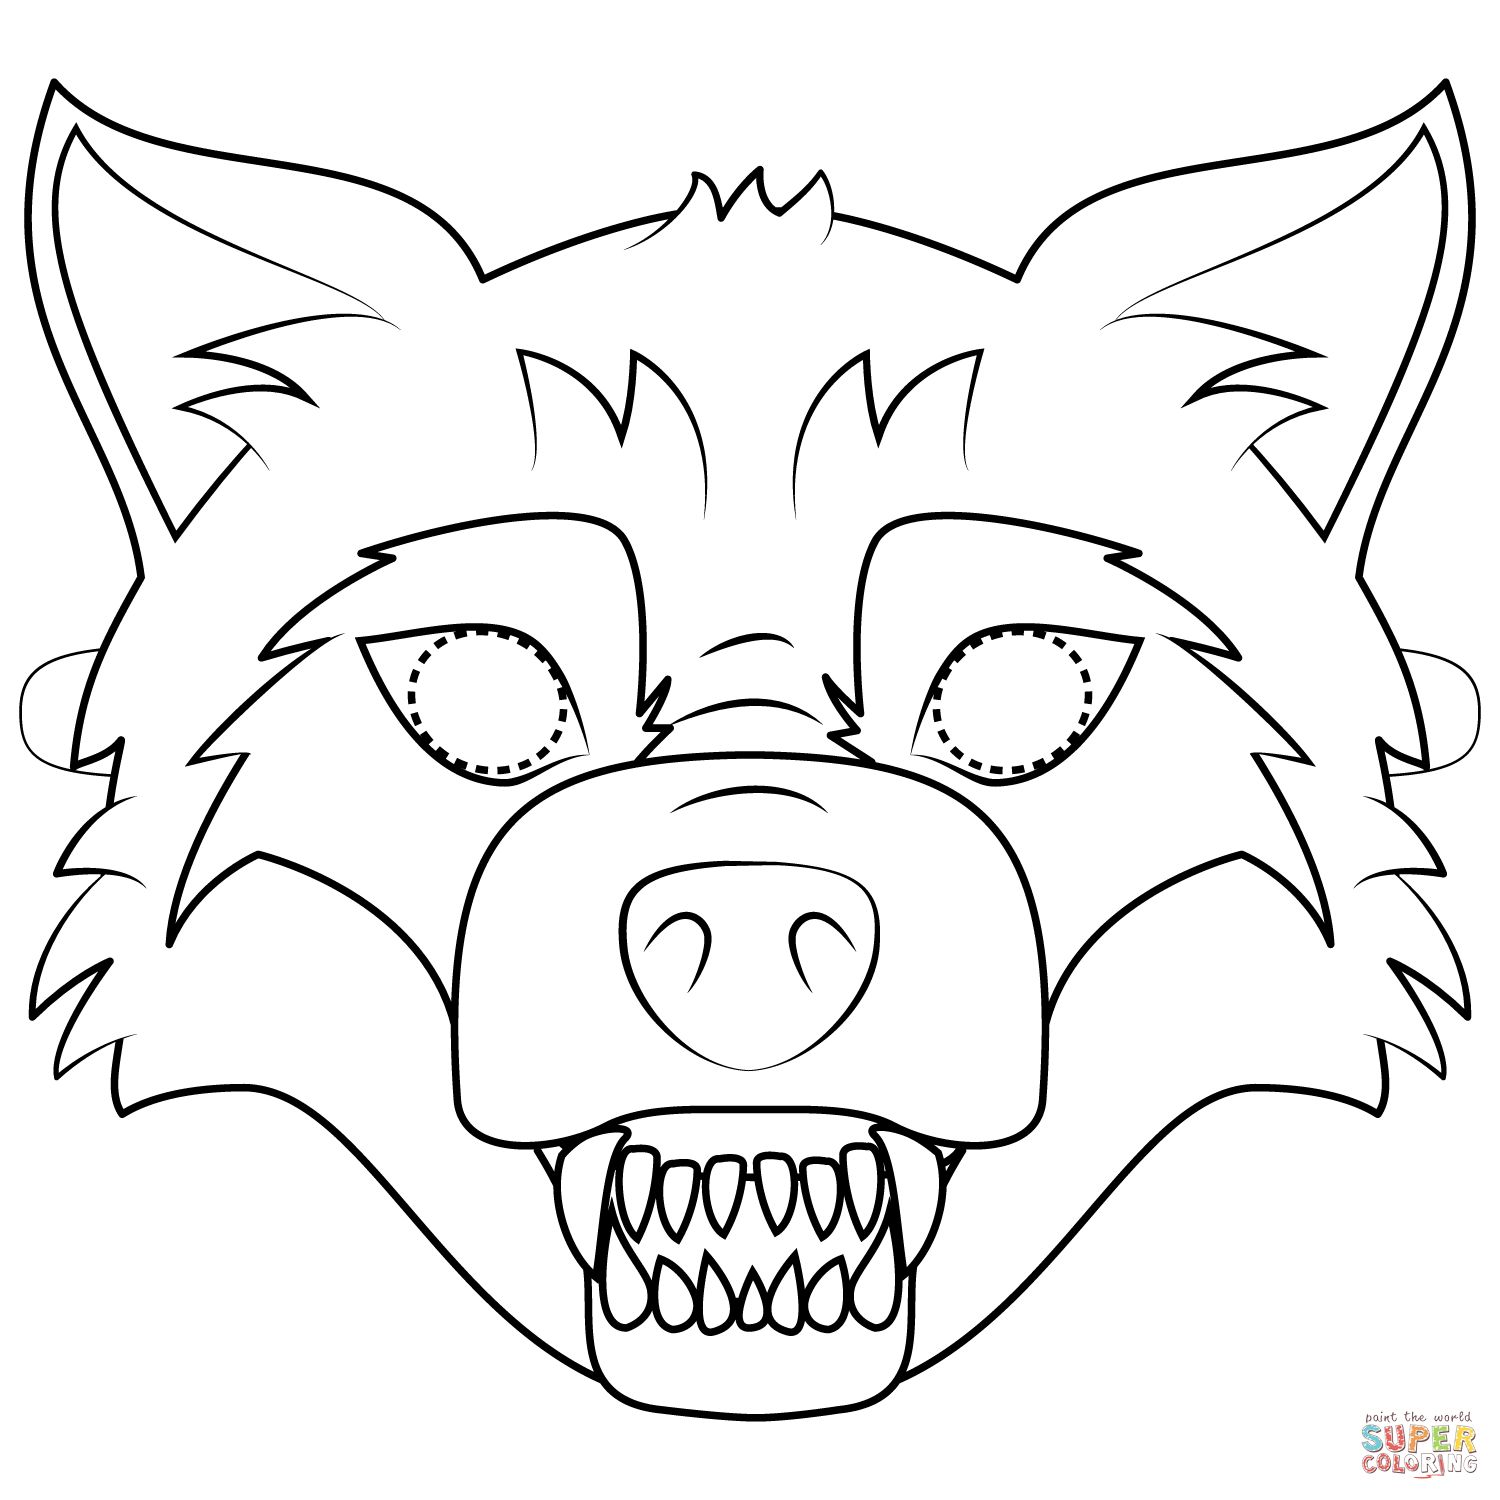 25 Excellent Image Of Mask Coloring Pages Wolf Mask Coloring